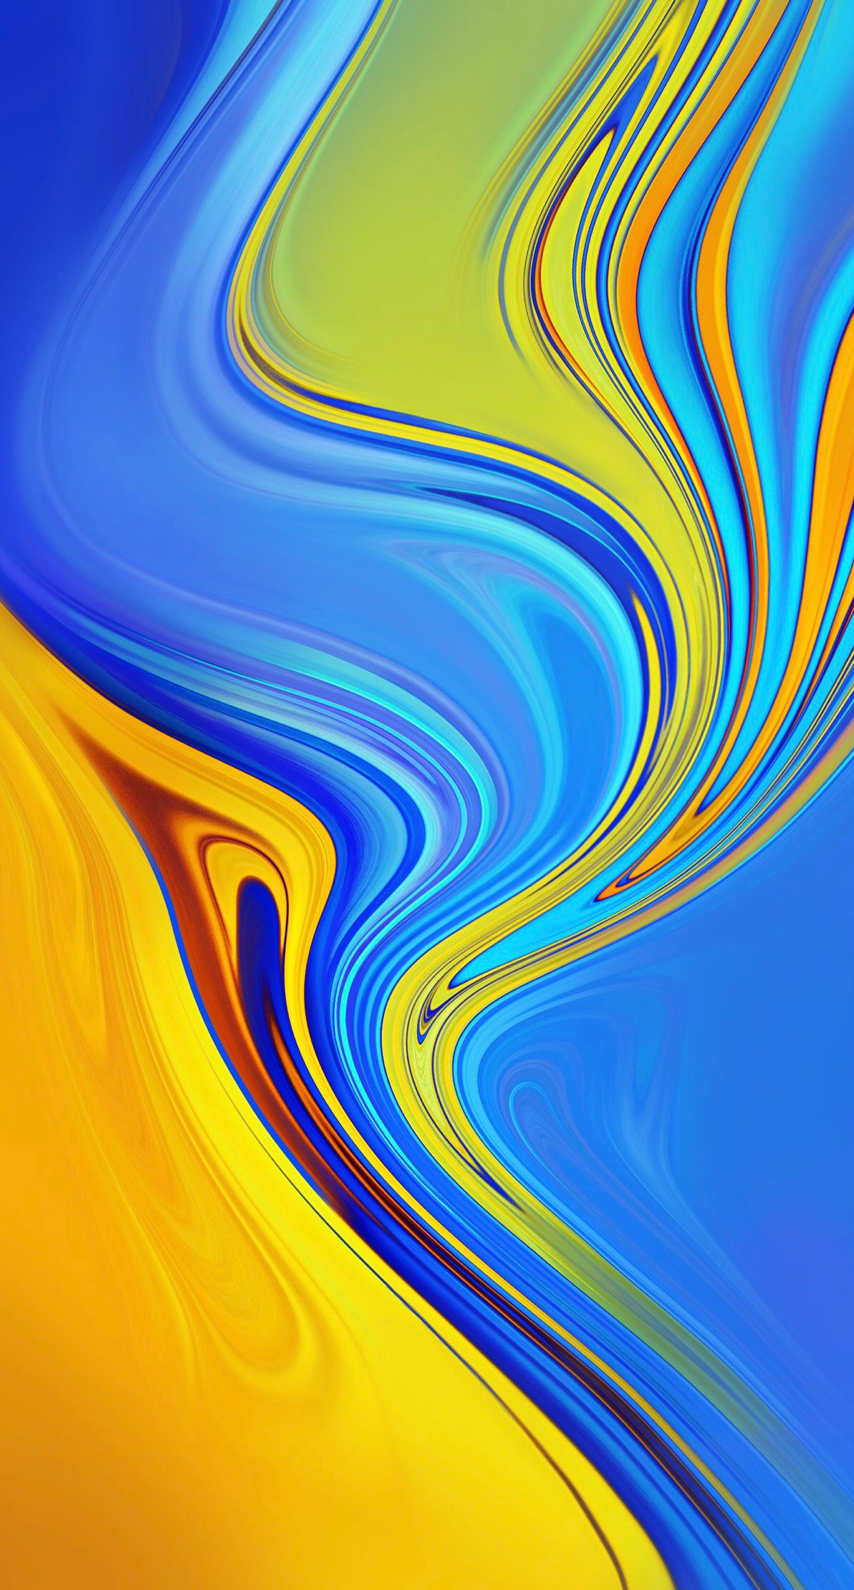 Colourful Fluid Ink Photography Blue And Yellow Abstract Art Colorful Decor Texture For Iph Android Wallpaper Art Samsung Wallpaper Android Wallpaper Abstract